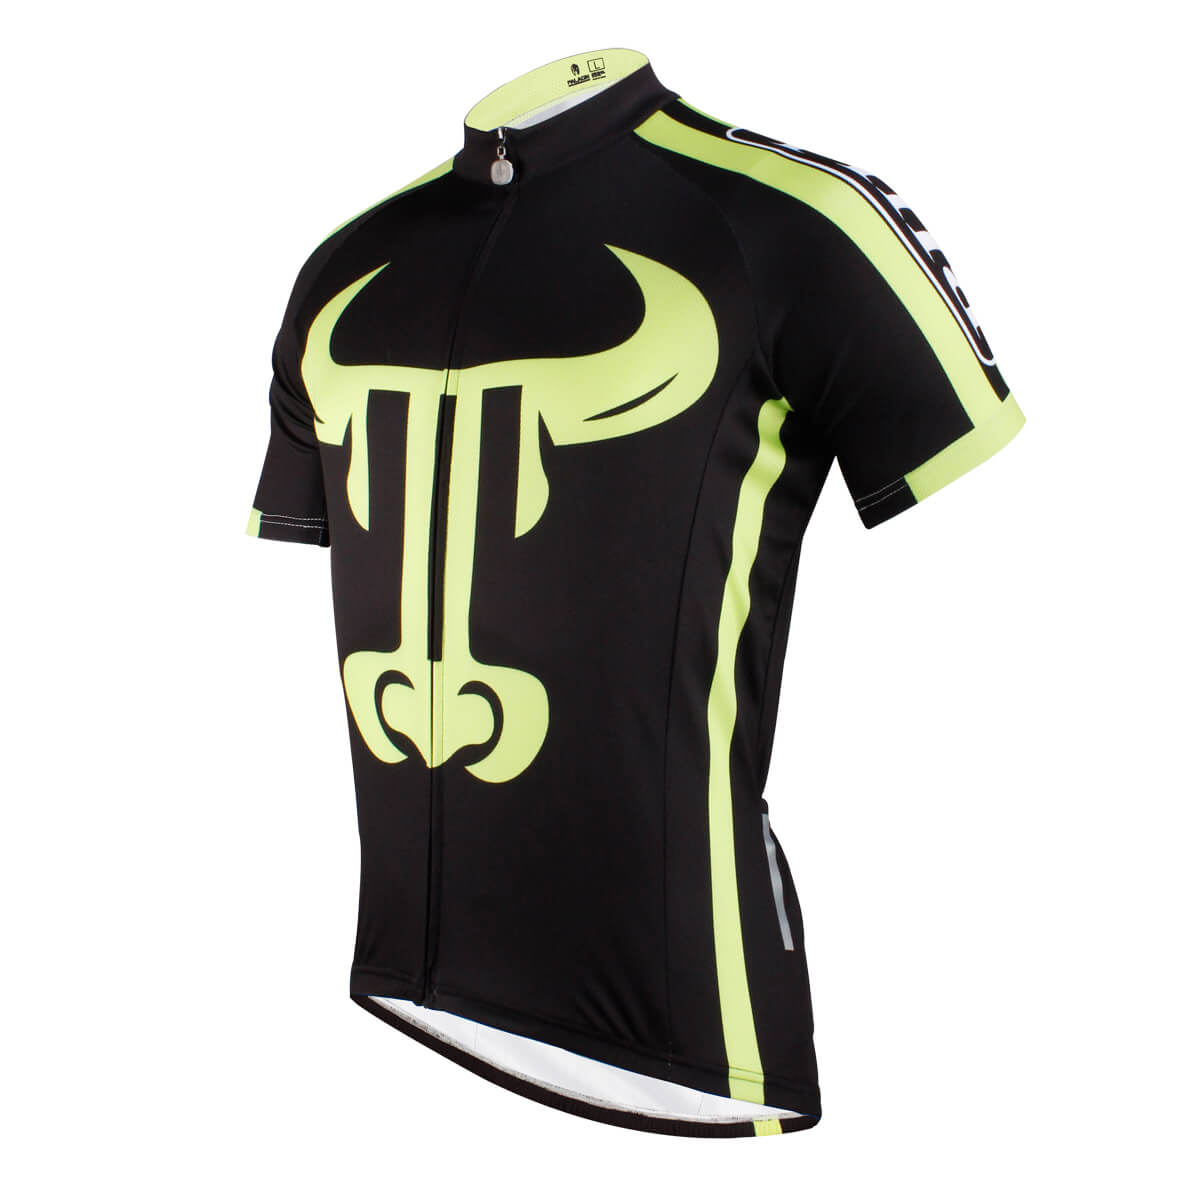 Bull Printed 100% Polyester Cycling Jersey For Man